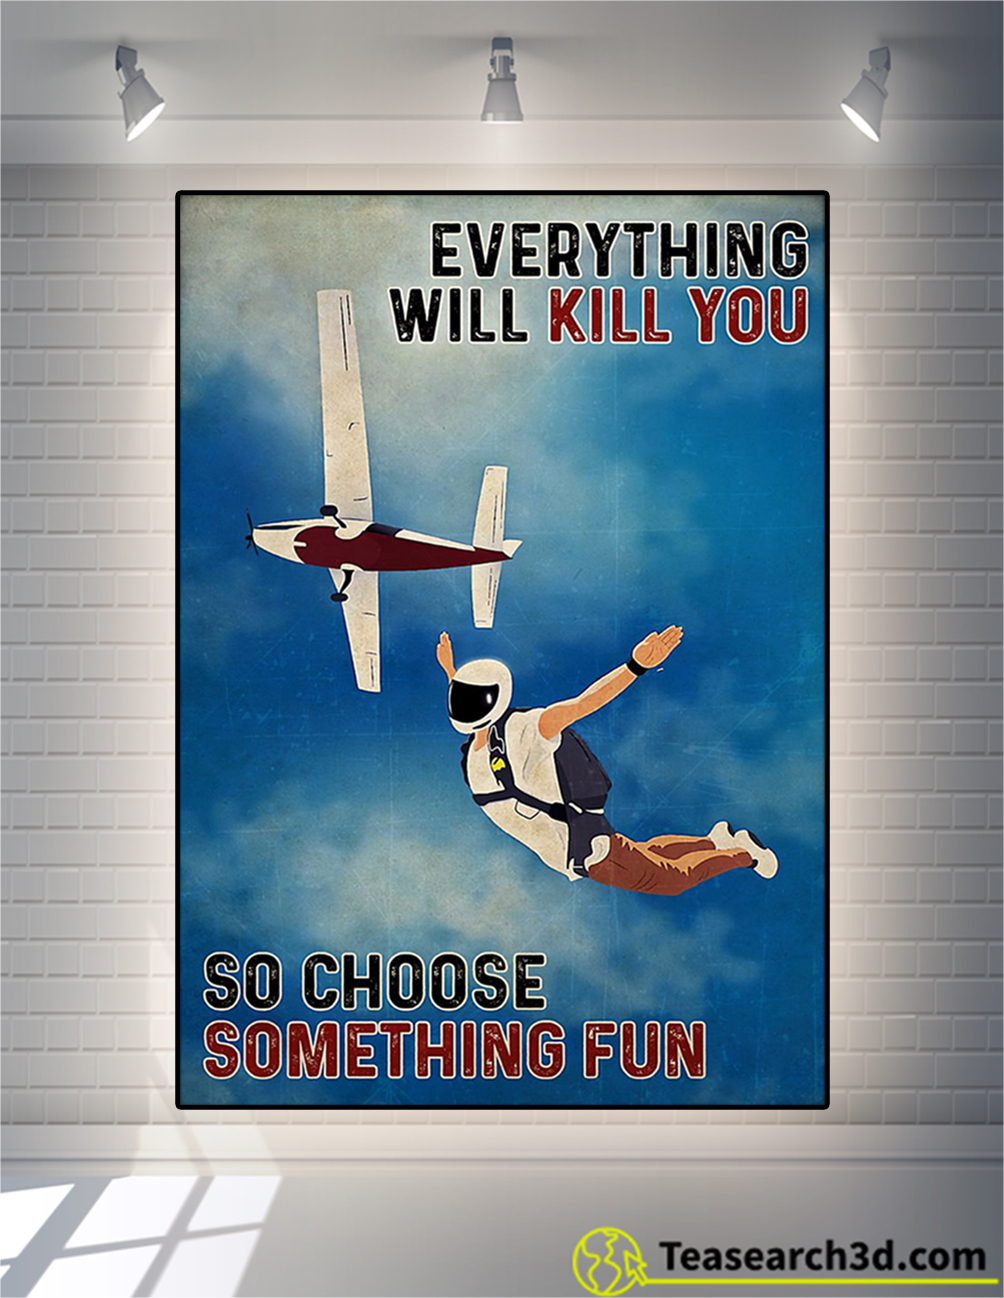 Skydiving everything everything will kill you poster